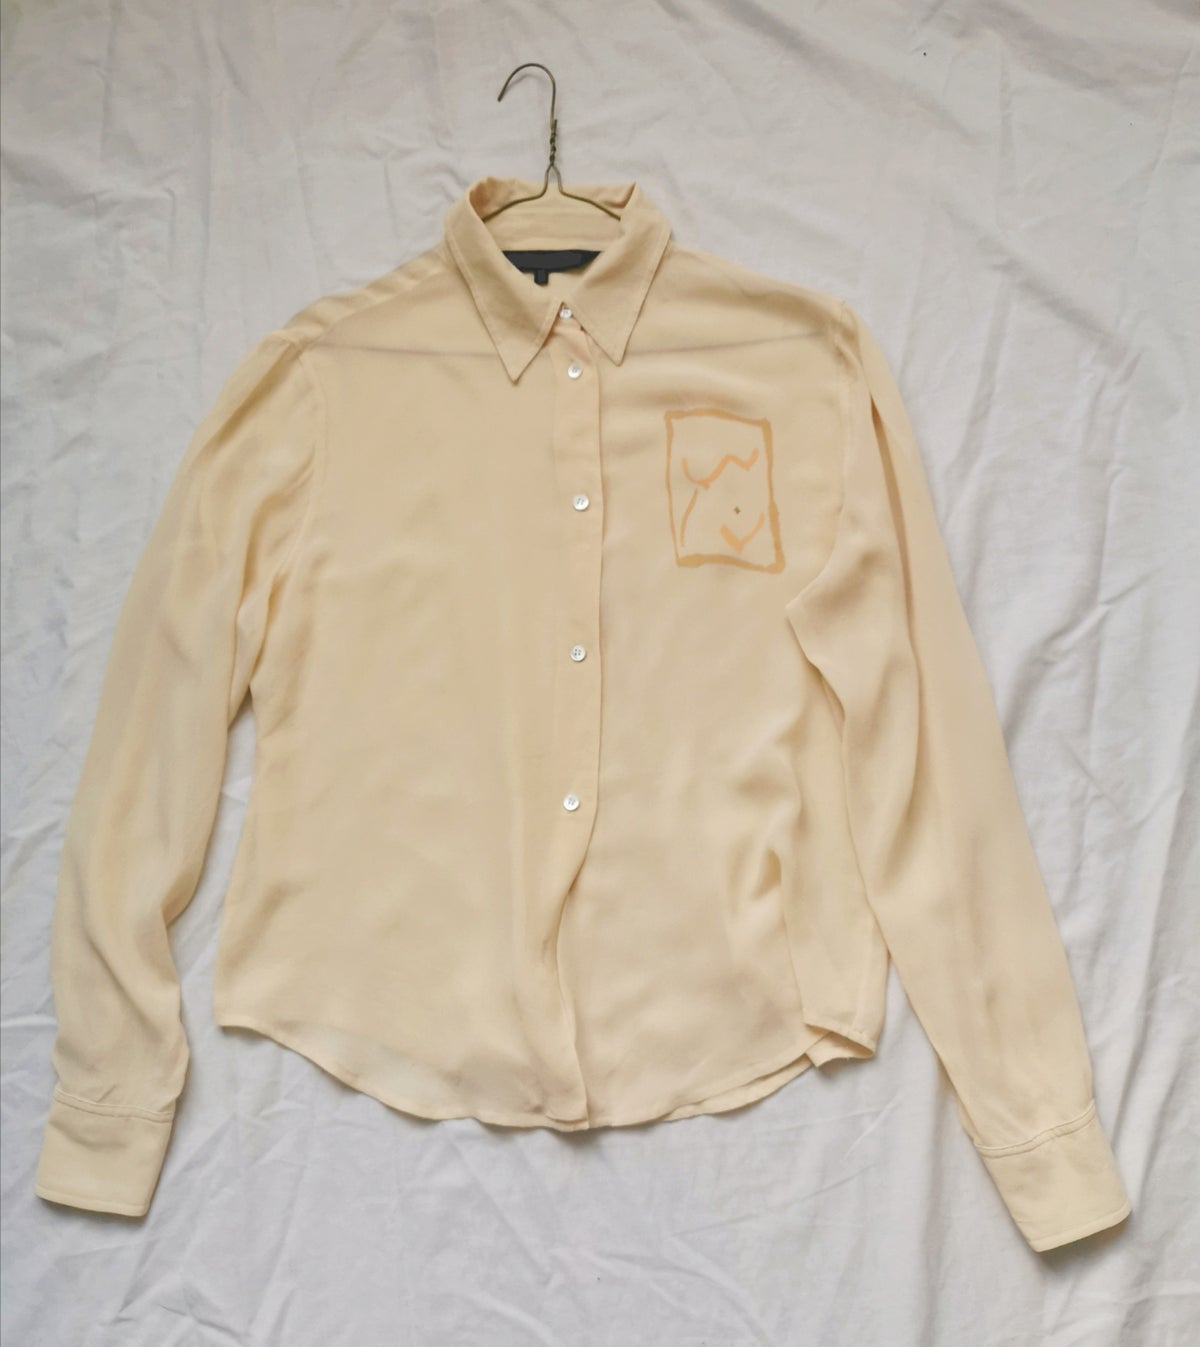 Image of pale gold blouse